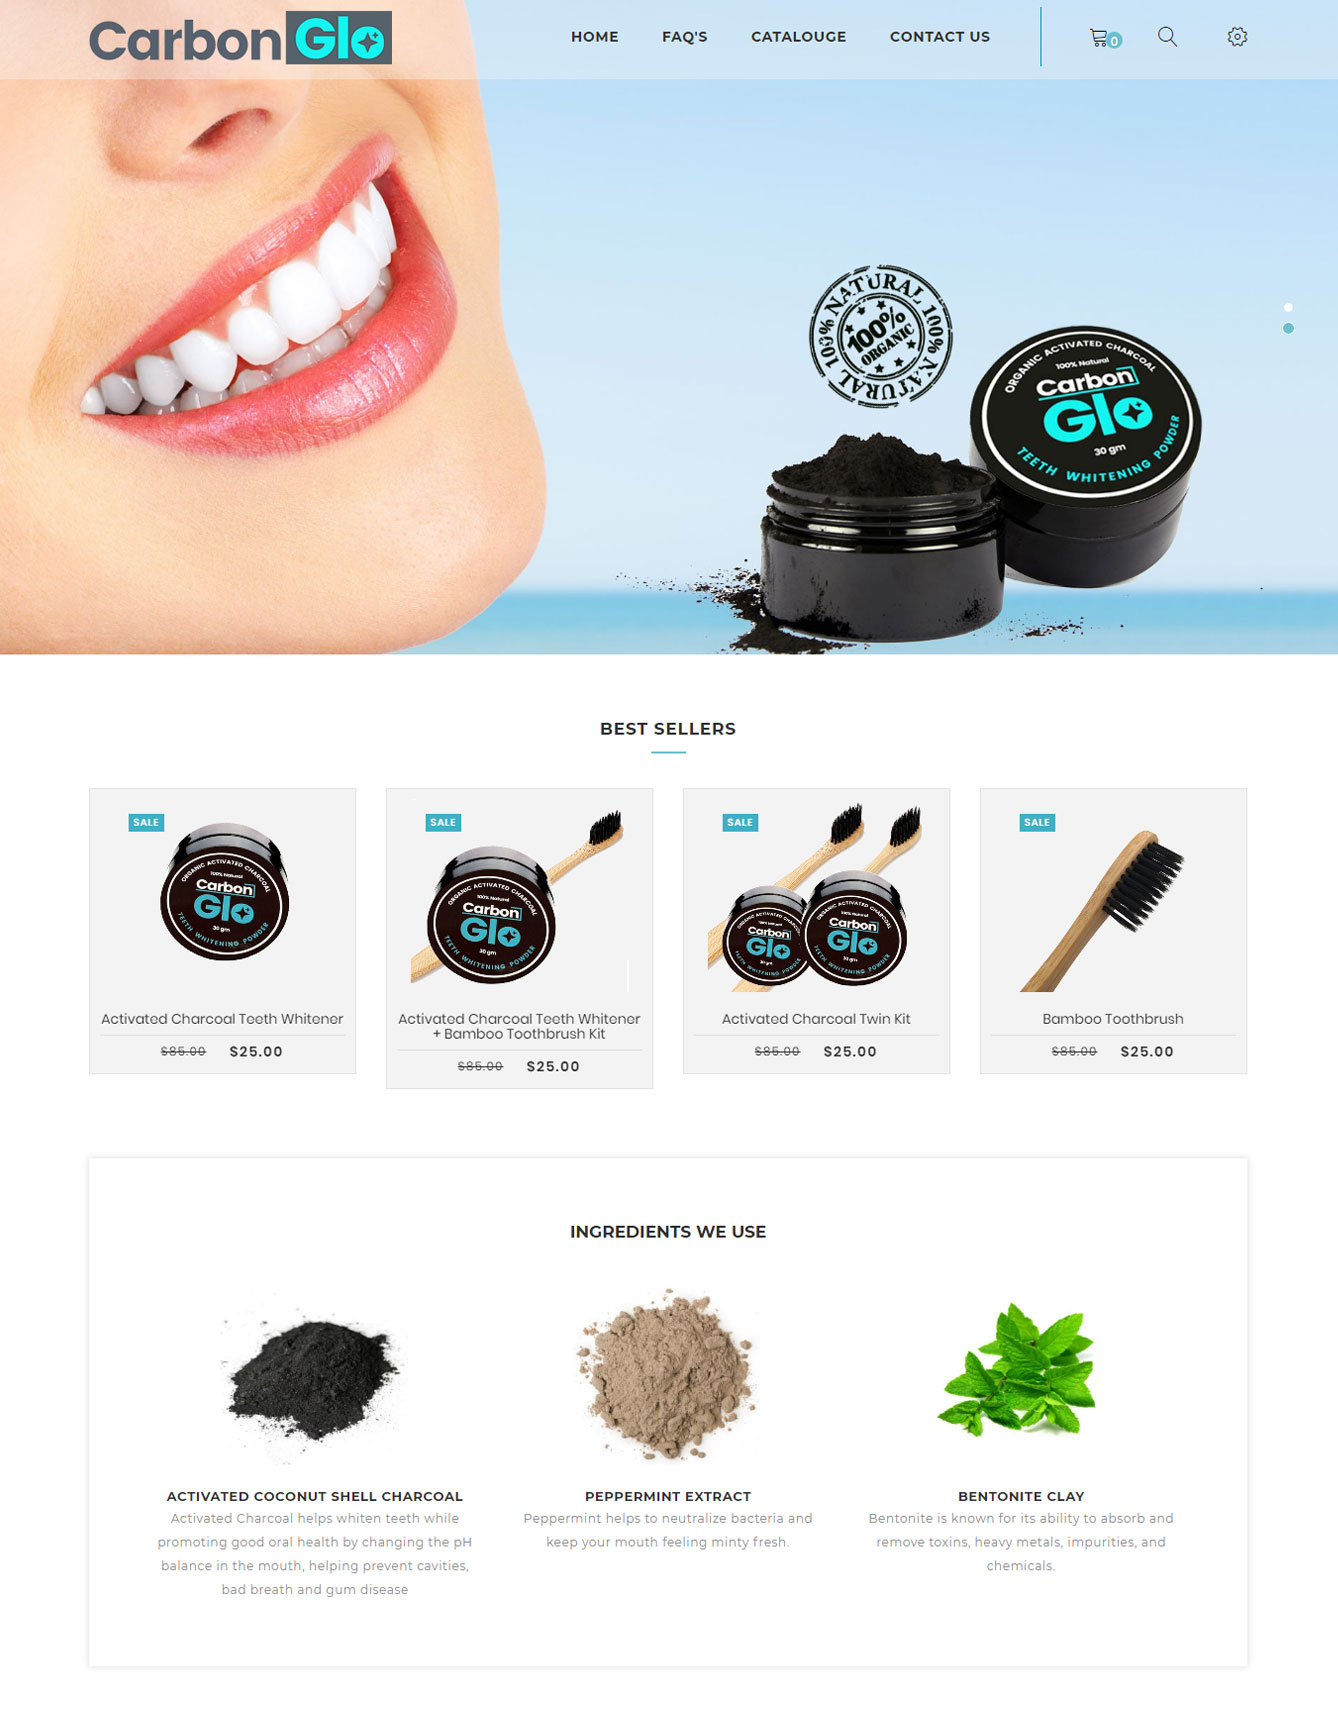 Carbon-glo website design